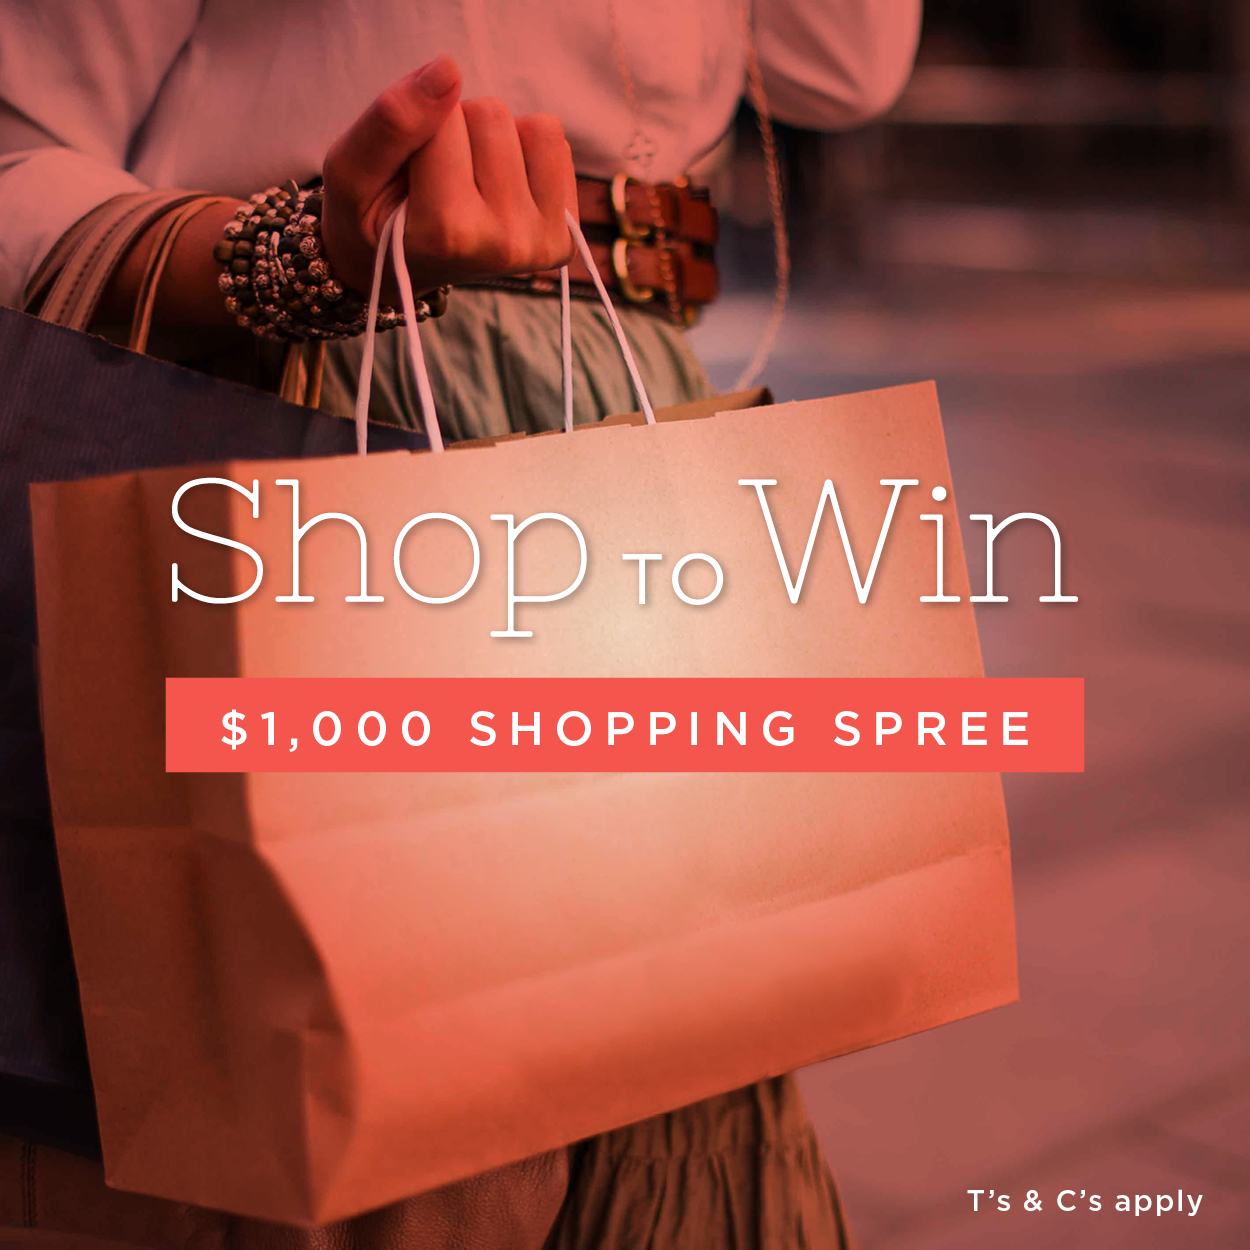 Shop to Win in Downtown Tauranga!